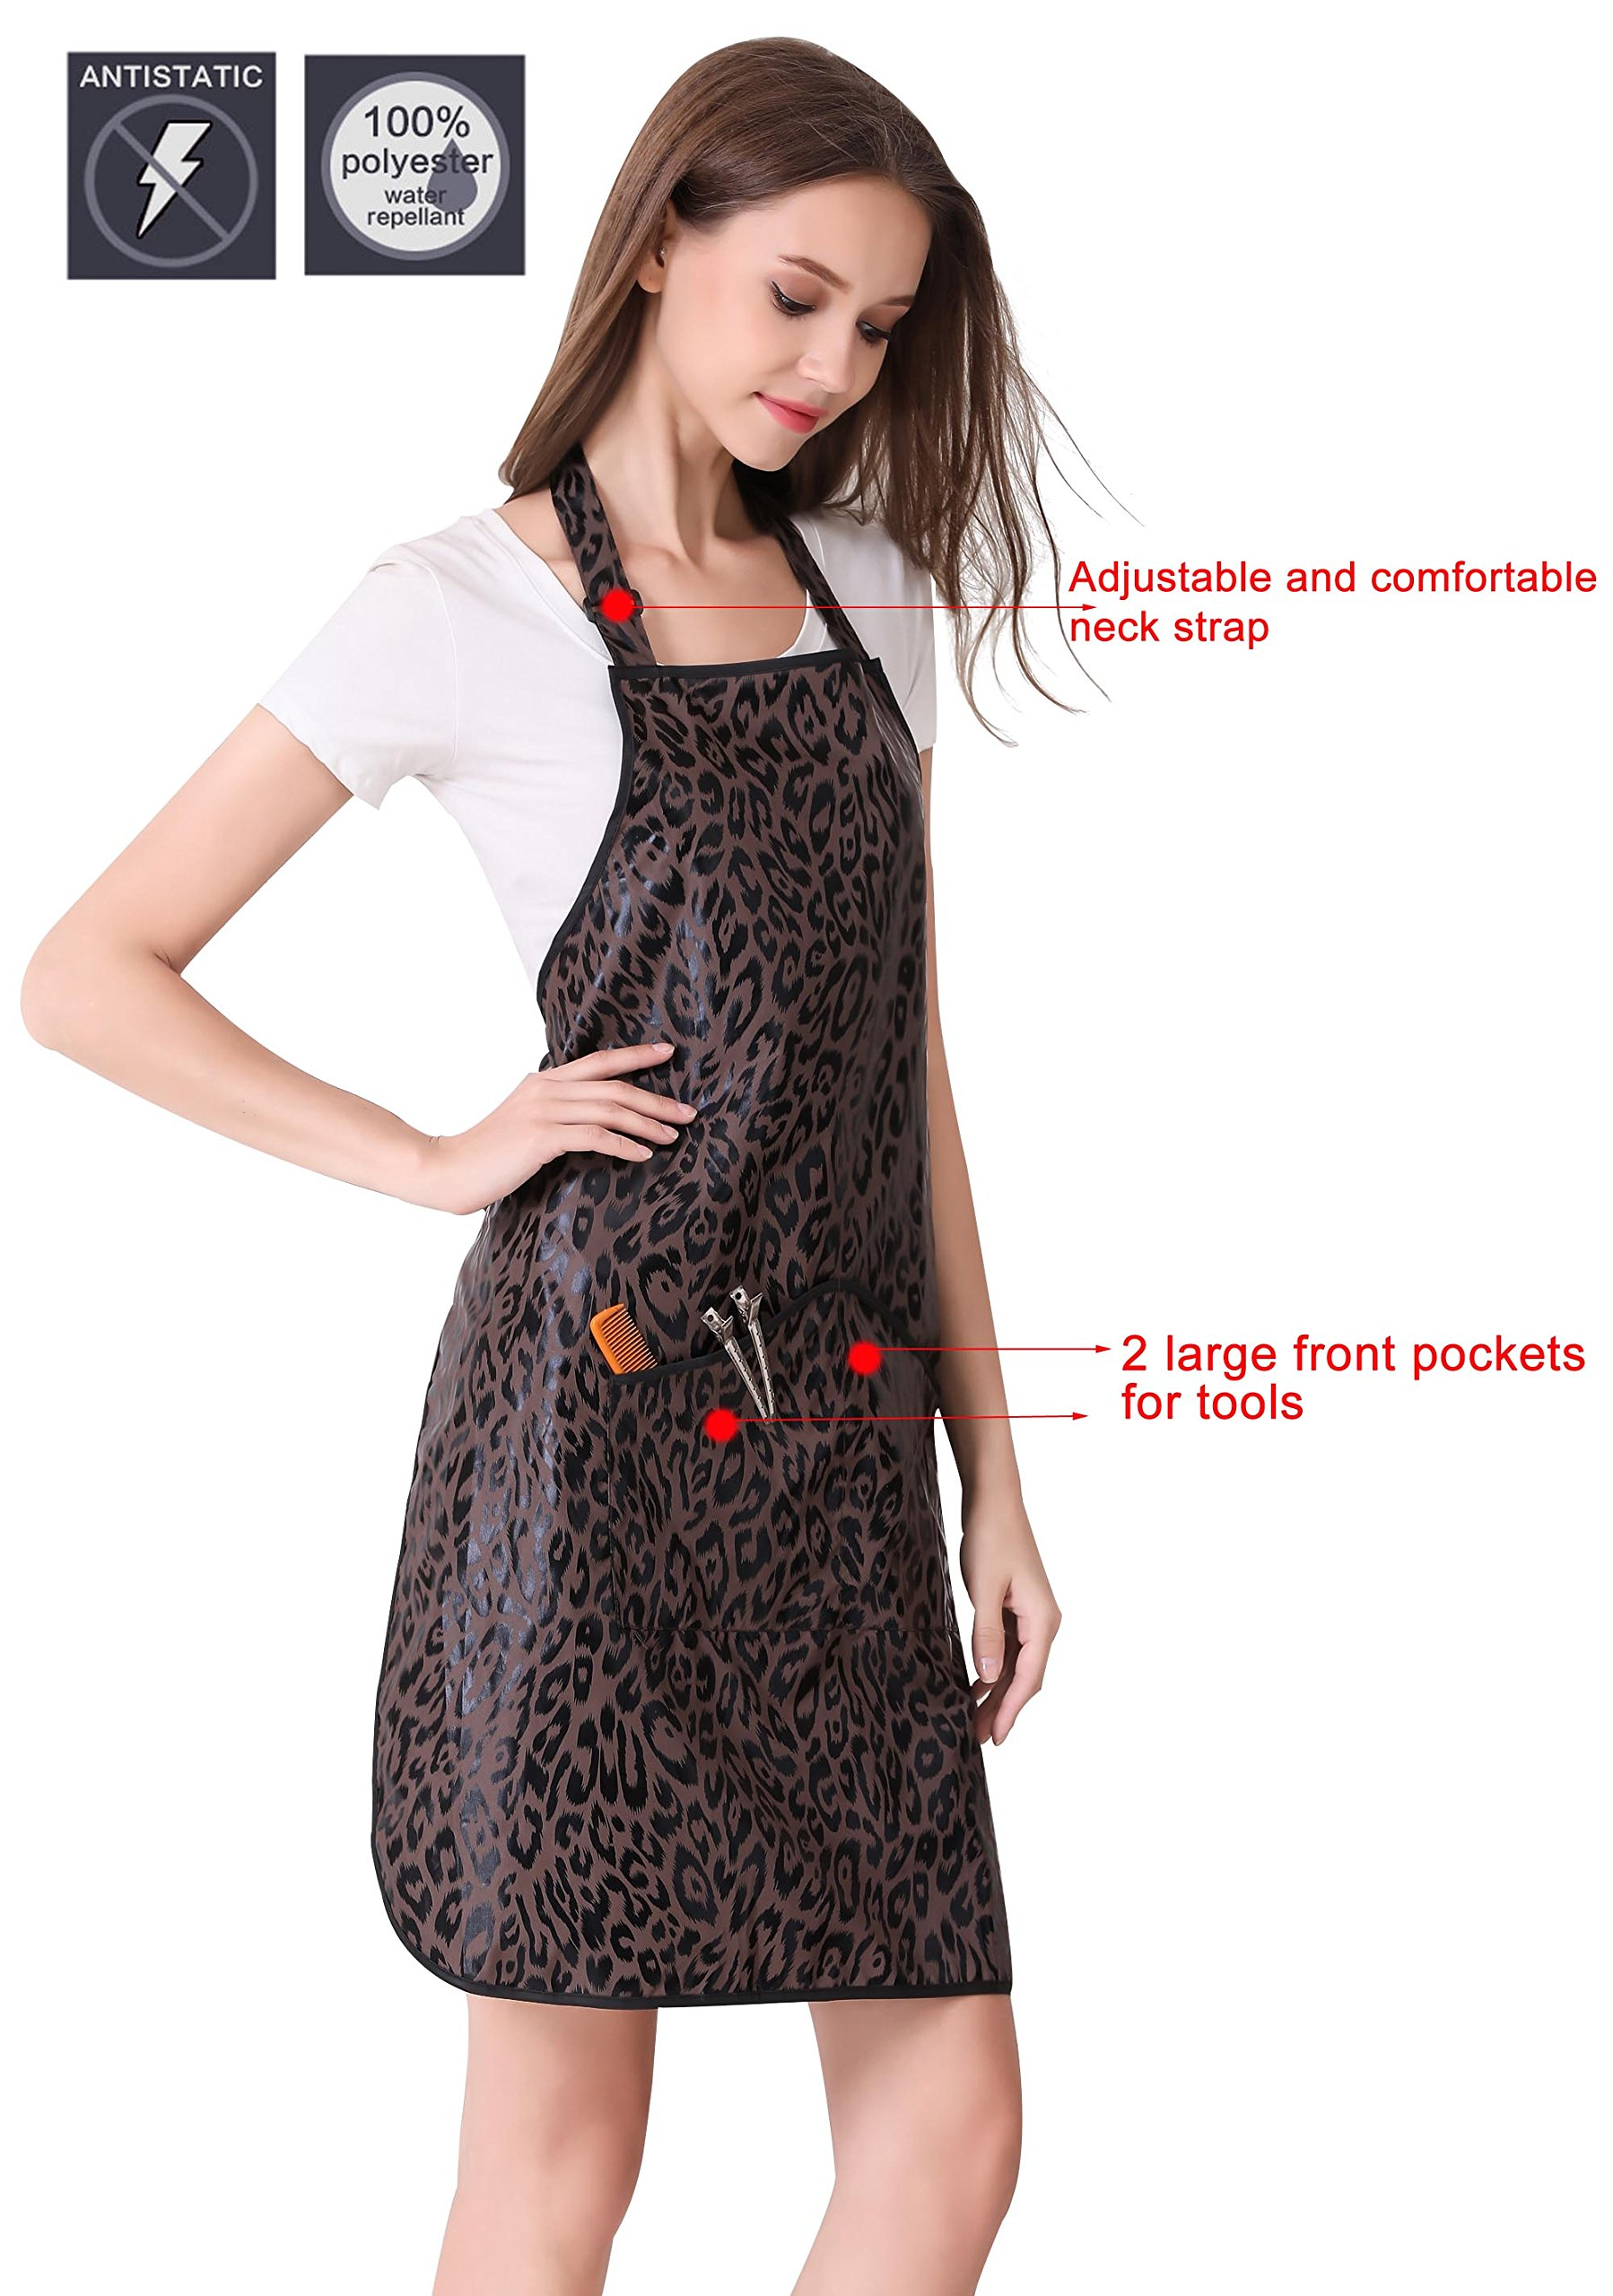 Hair Stylist Apron for Salon Hairdresser, Barber Haircut Styling Apron With Pockets-Leopard Print by Perfehair (Image #3)